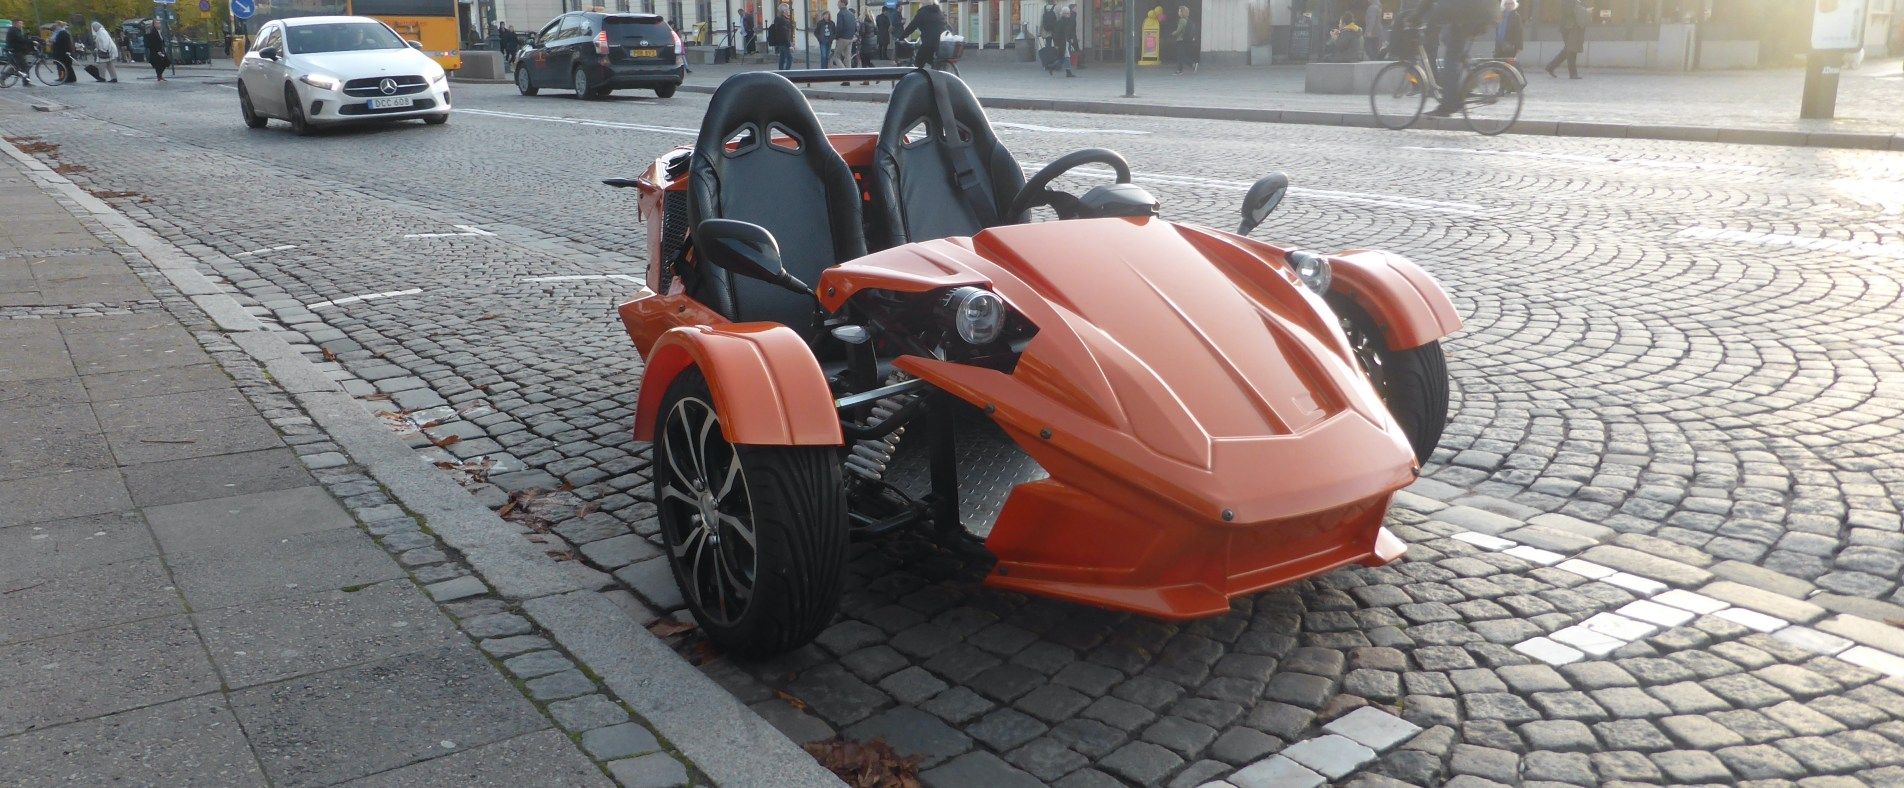 OMotion ETR, three wheeled motorcycle. Parked in city of Lund, Sweden.